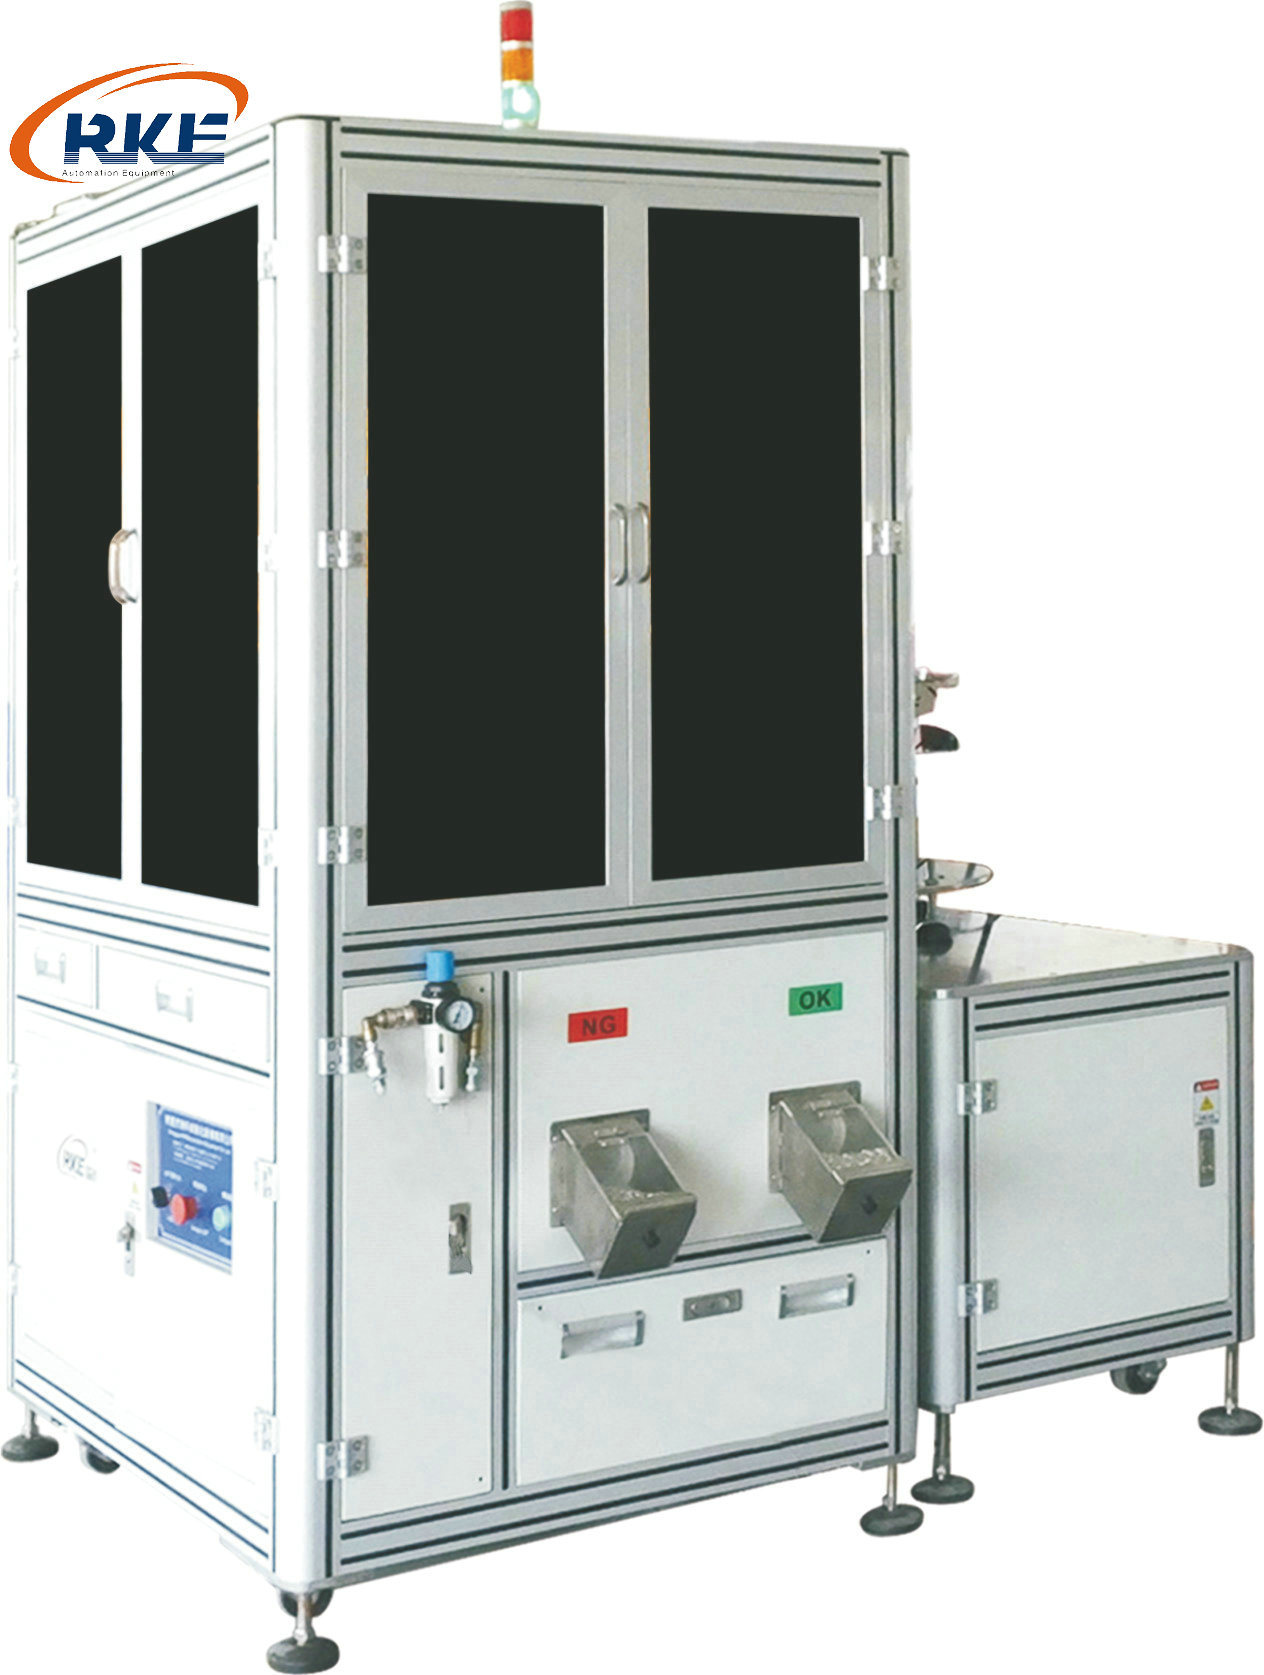 Automatic Sorting Machine for Fasteners